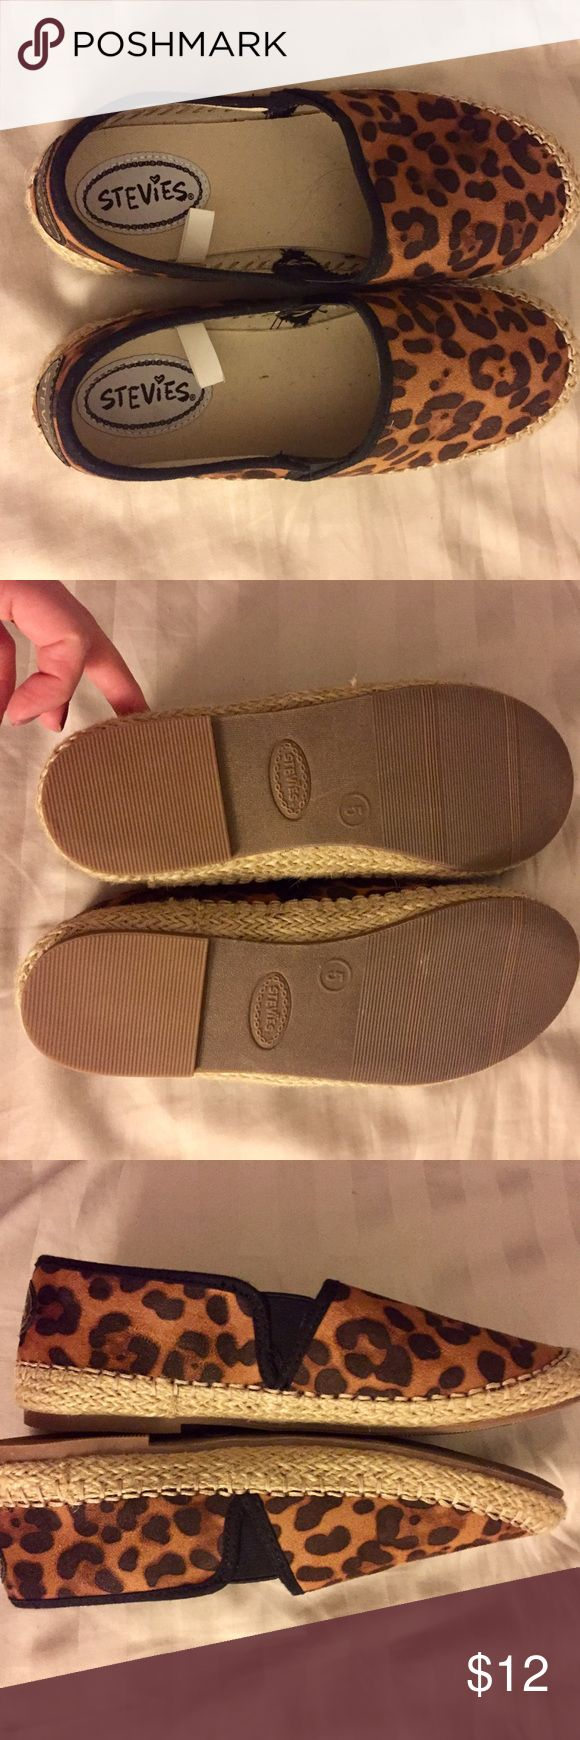 Leopard loafers Brand new never worn say size 5 but fit size 6 Shoes Flats & Loafers